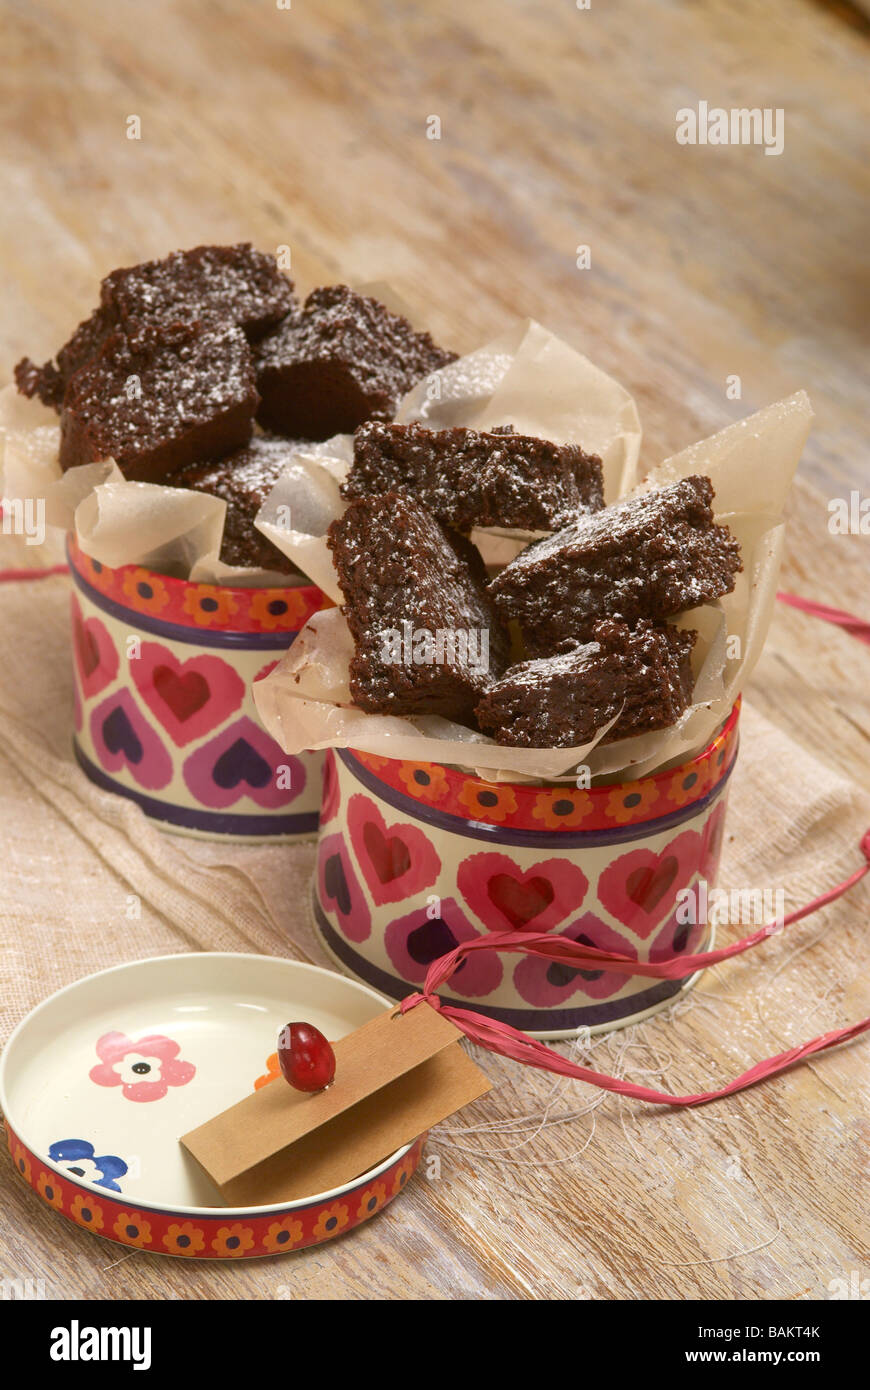 Chocolate brownies in tins surrounded by greaseproof paper - Stock Image